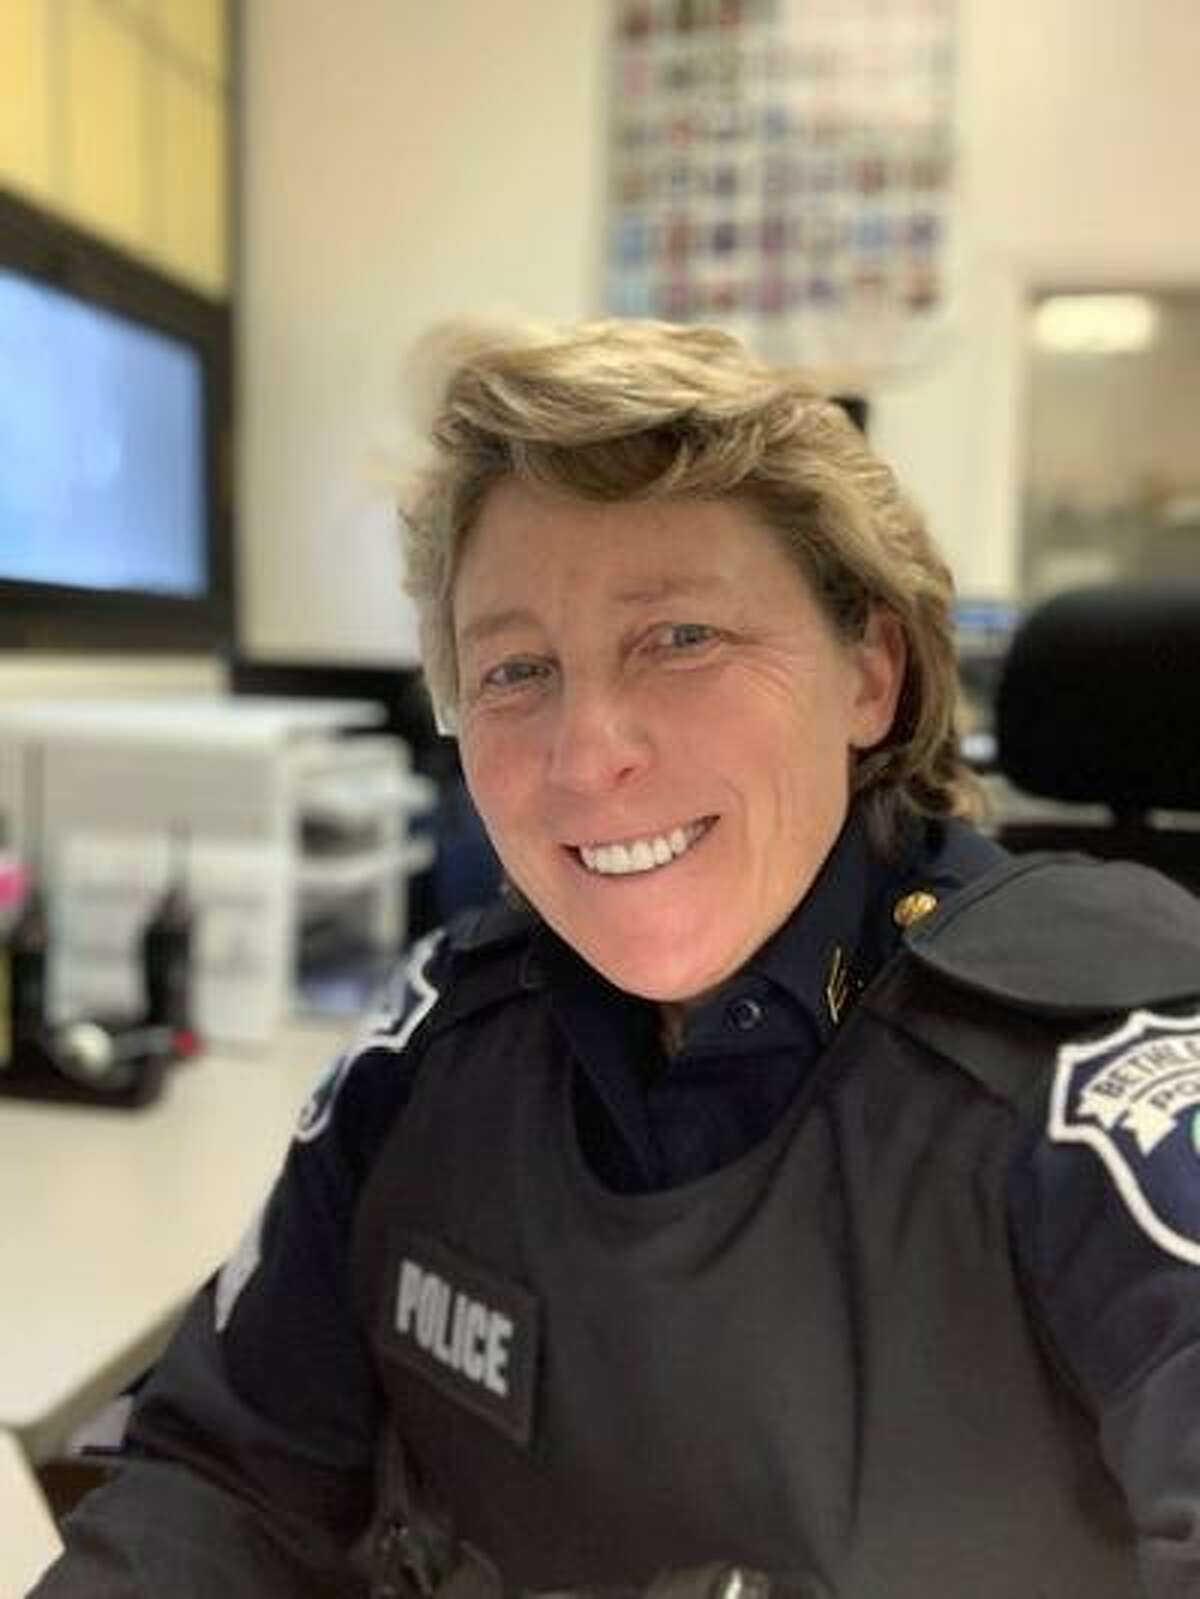 Detective Sgt. Gina Cocchiara, Bethlehem Police Department